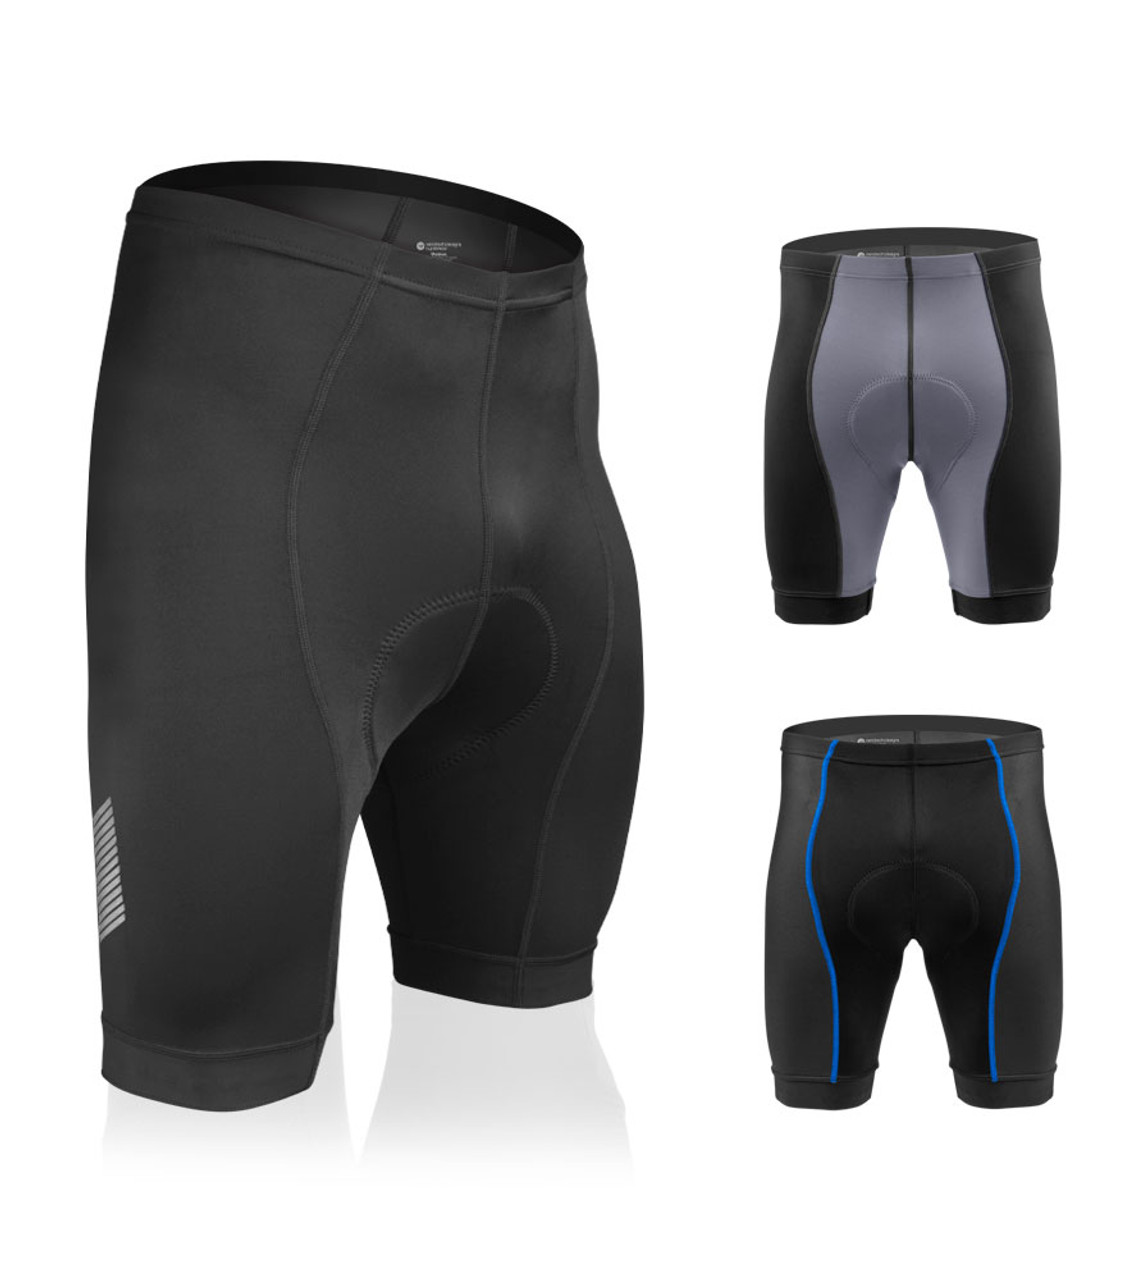 Gel Padded Cyclist Shorts,/& Matching Jersey Set Details about  /ProAthletica Men/'s High Quality